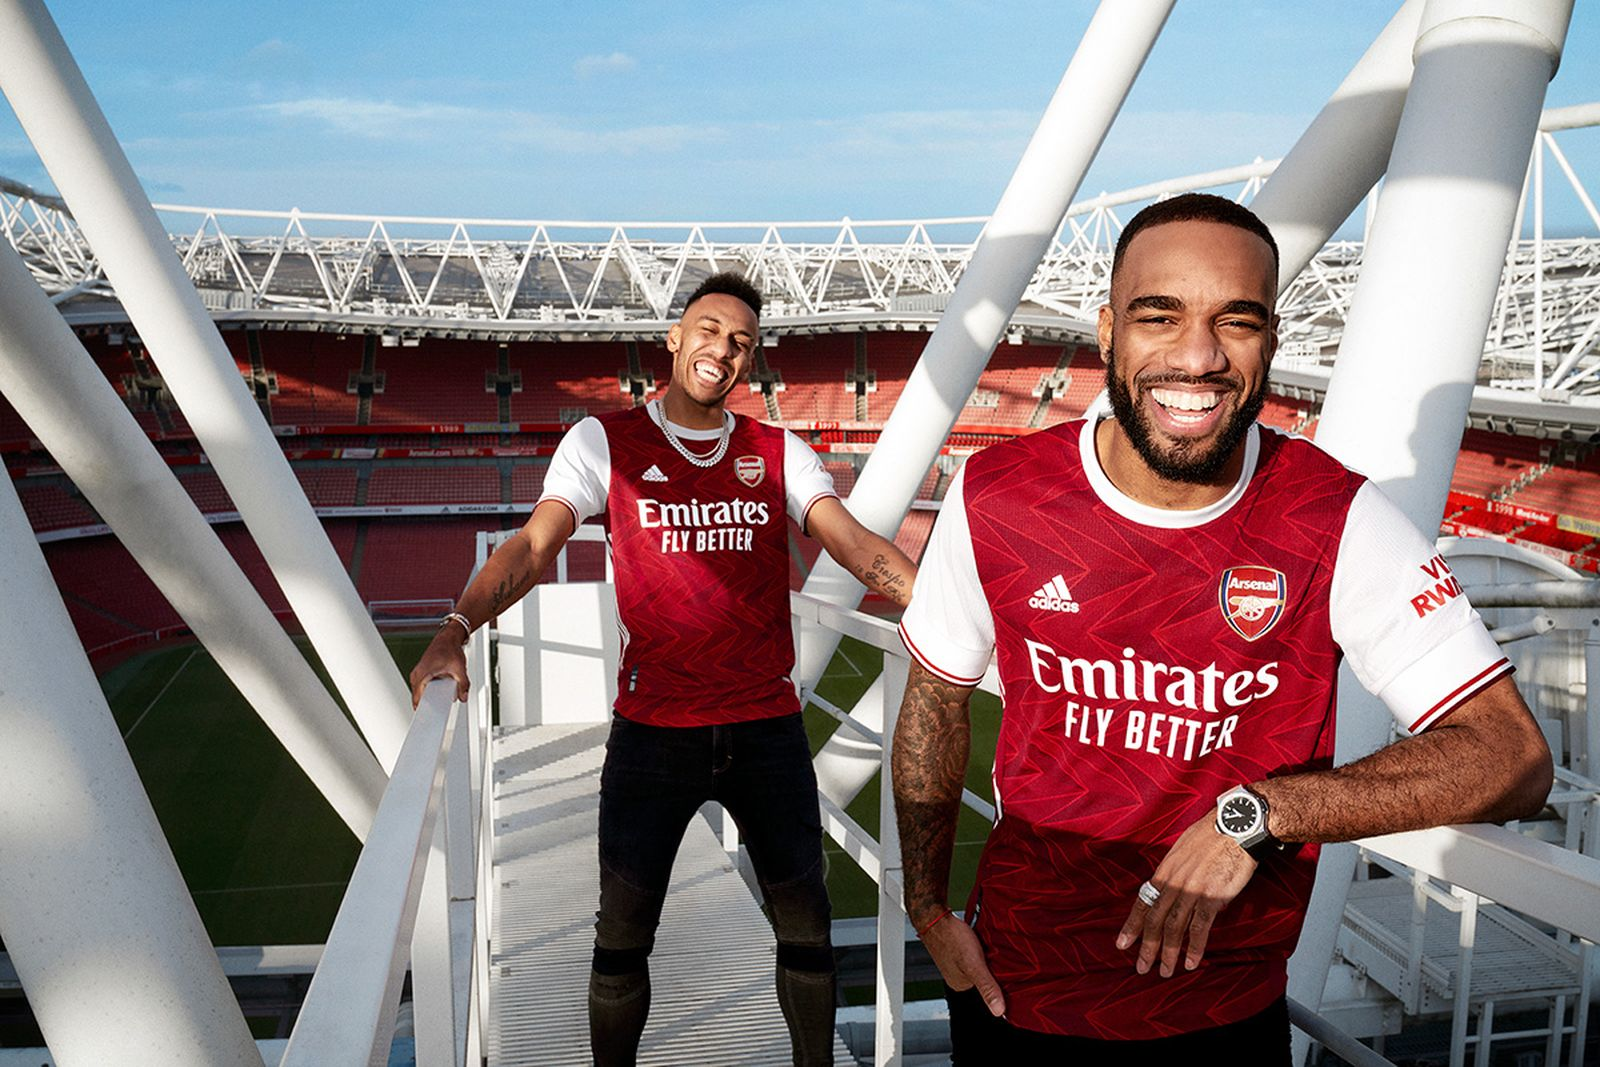 Wavy The Arsenal Kit Home Super adidas Is 20/21